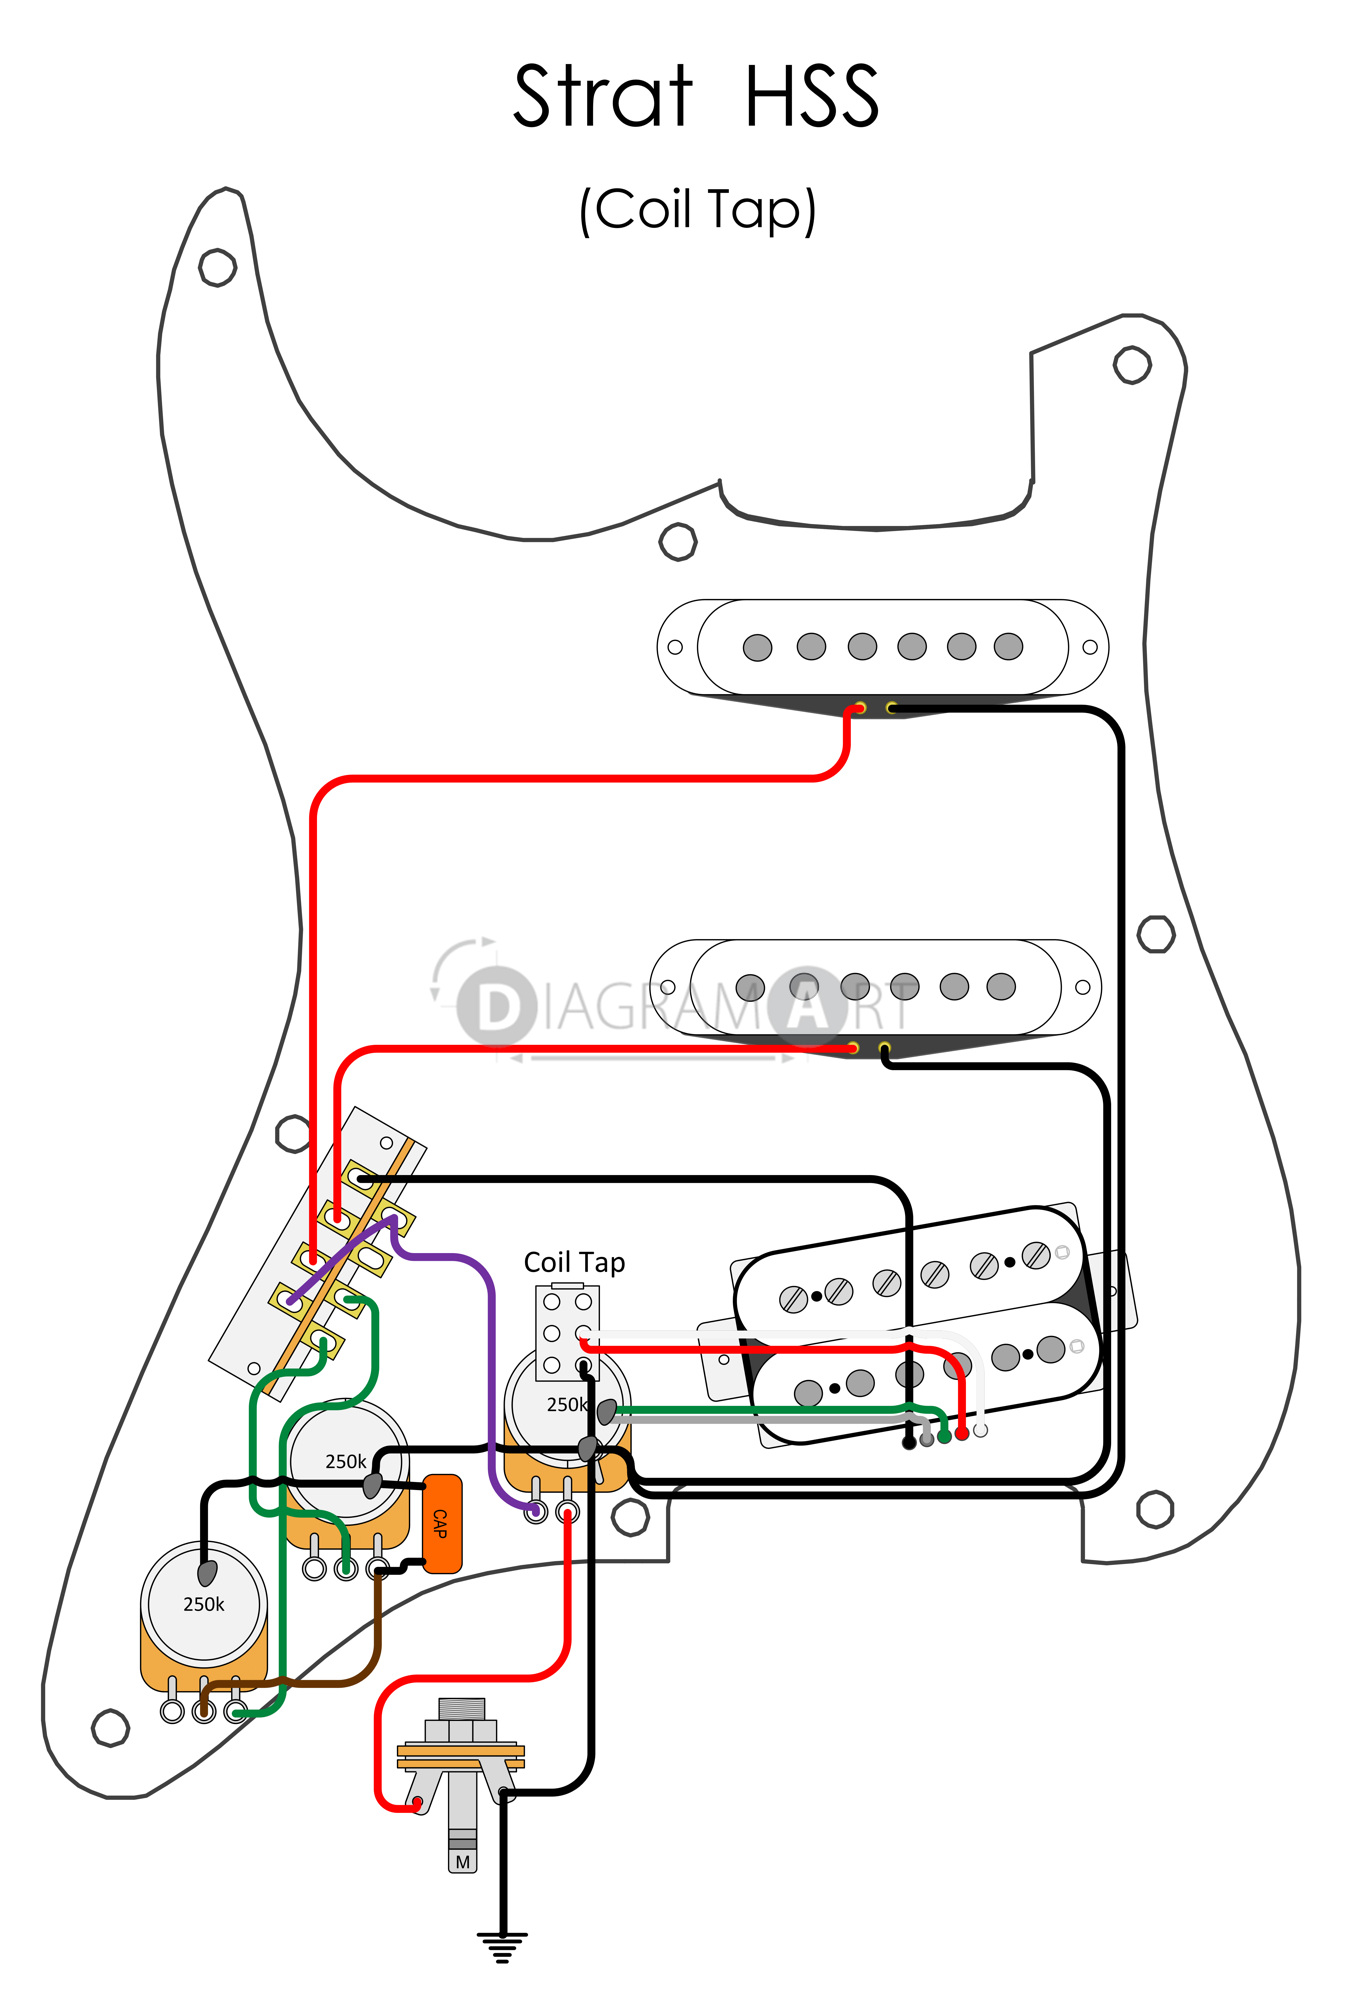 Coil Split Hss Wiring Diagram Reinvent Your Dimarzio Pickup Electric Guitar Strat Tap Circuit Rh Diagramart Com Dual Humbucker